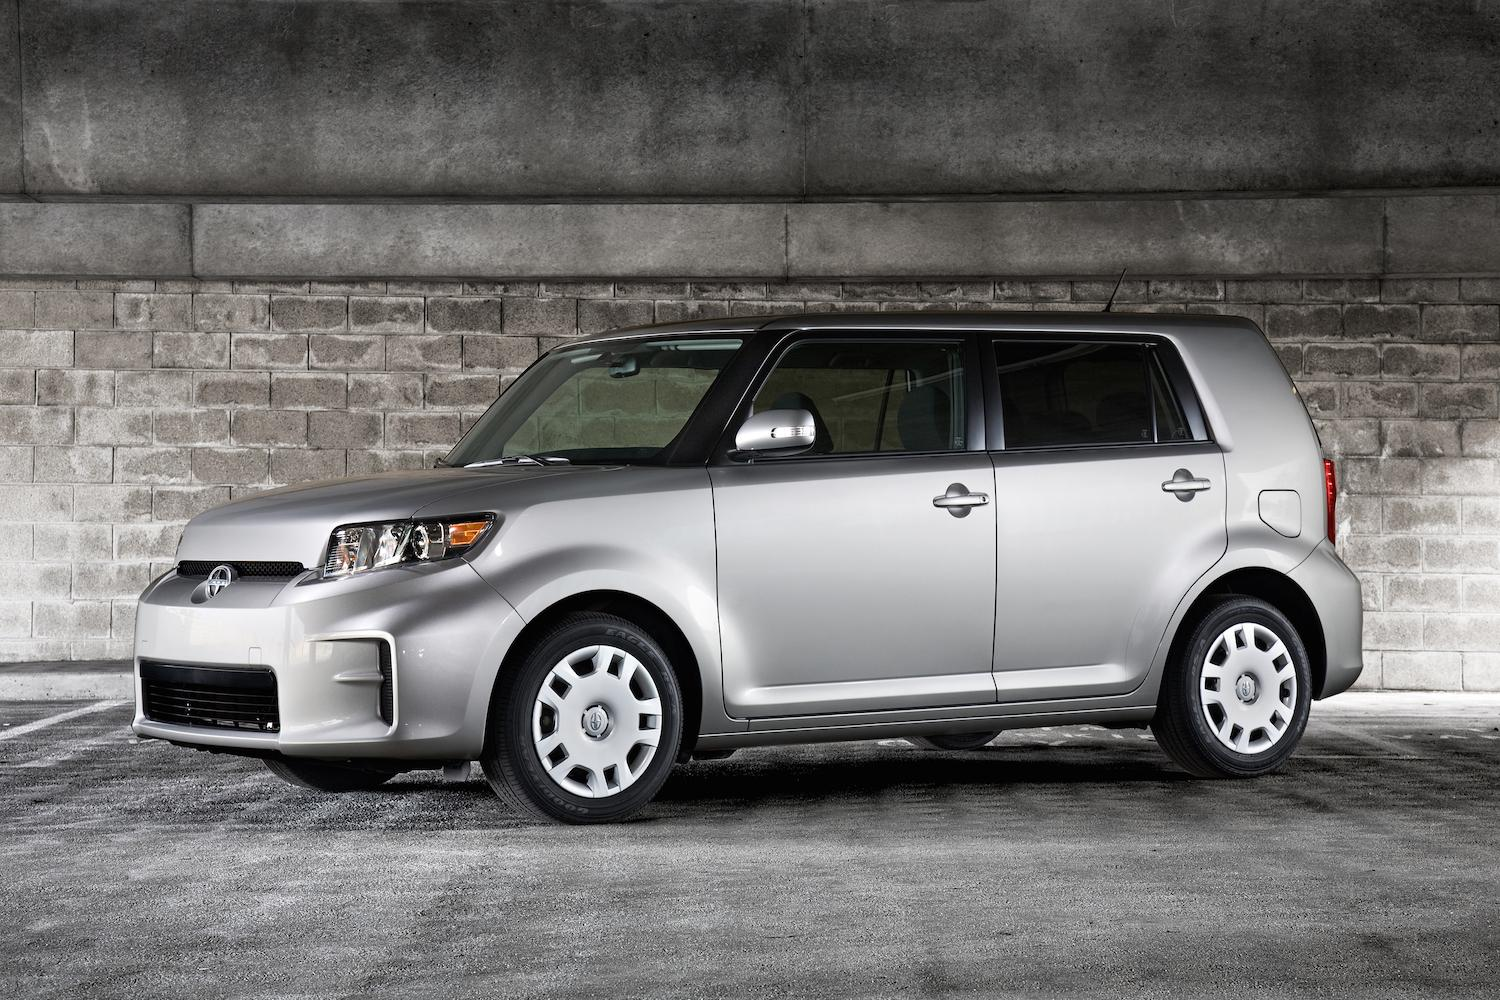 Guess It's Not Hip To Be Square: Scion Says The XB Wagon